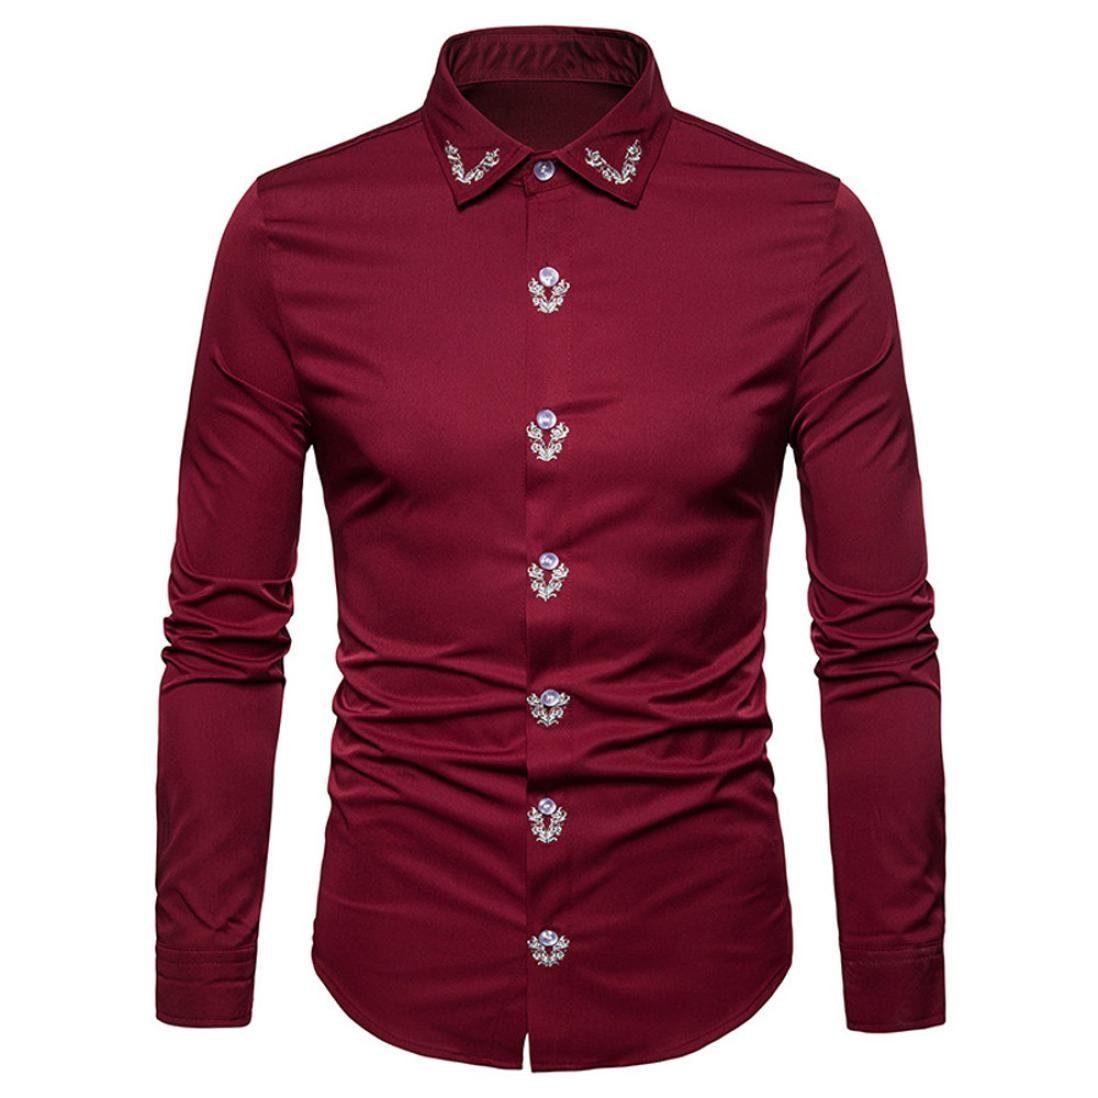 Pervobs Long Sleeve Shirts, Big Promotion! Mens Hipster Long Sleeve Slim Fit Button Down Embroidery Dress Shirts Tops Blouse (M, Red) by Pervobs Mens Long Sleeve Shirts